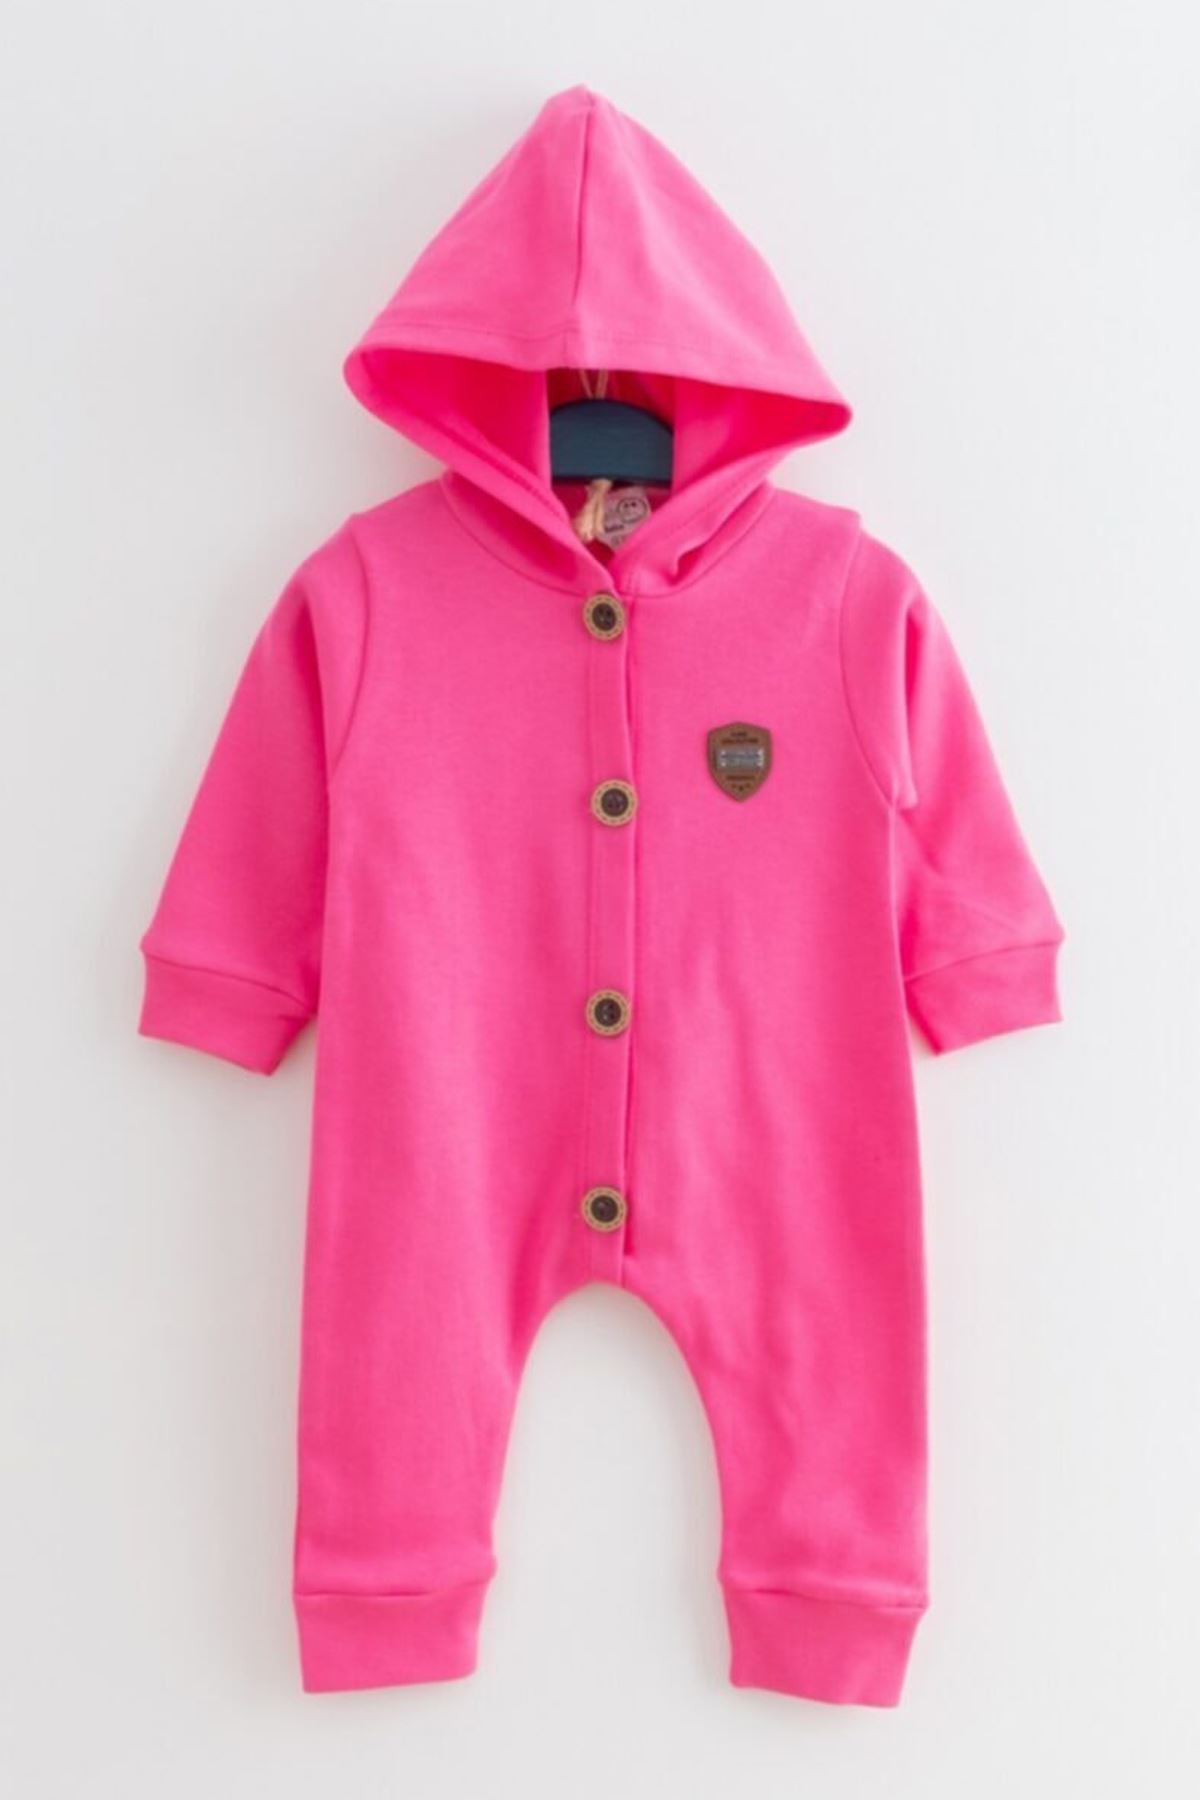 Fuchsia Baby Girl Rompers Hooded Girls Babies Clothes Outfit Models Kids Cotton Comfortable 2021 Fashion Style Models